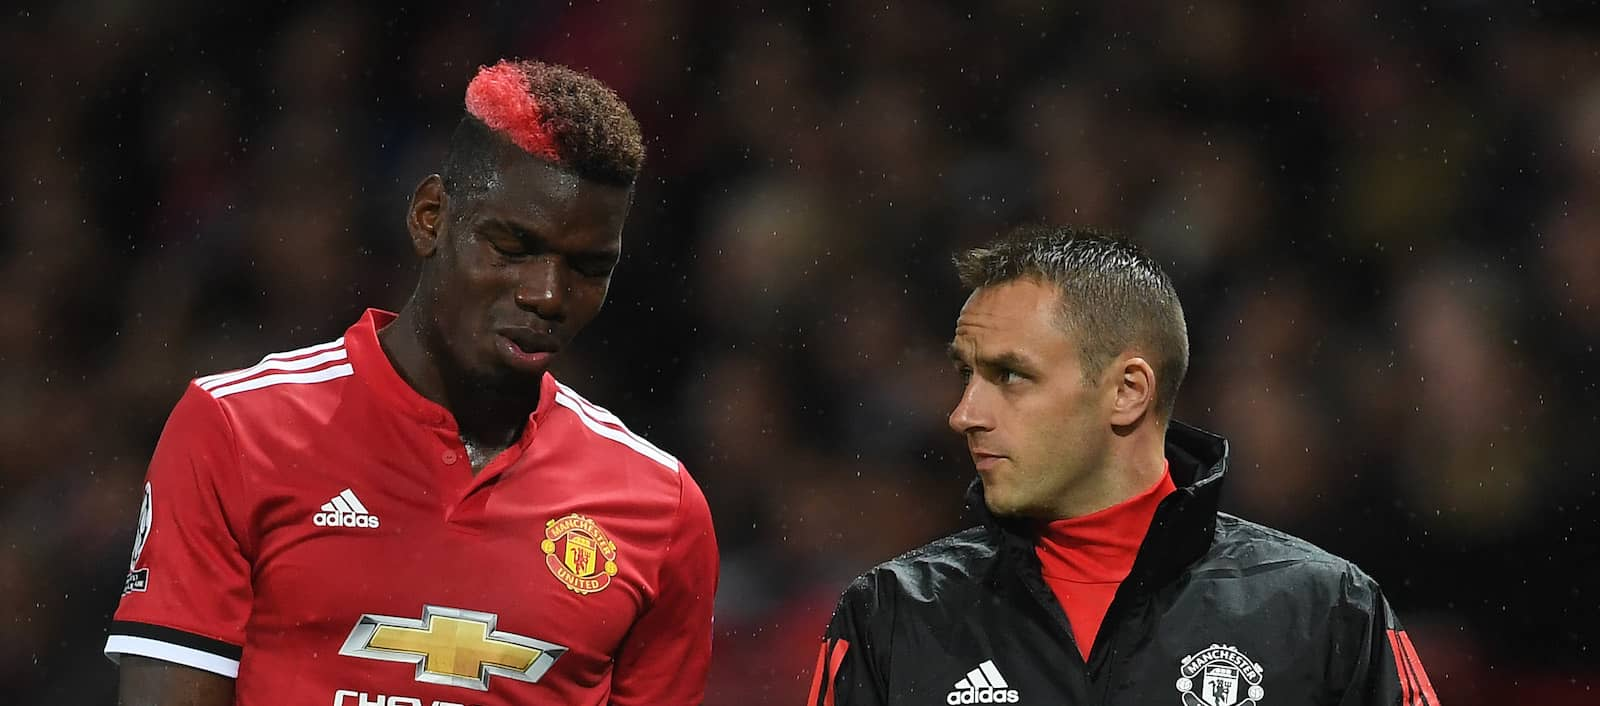 Paul Pogba set to have scan on hamstring injury after leaving Old Trafford on crutches